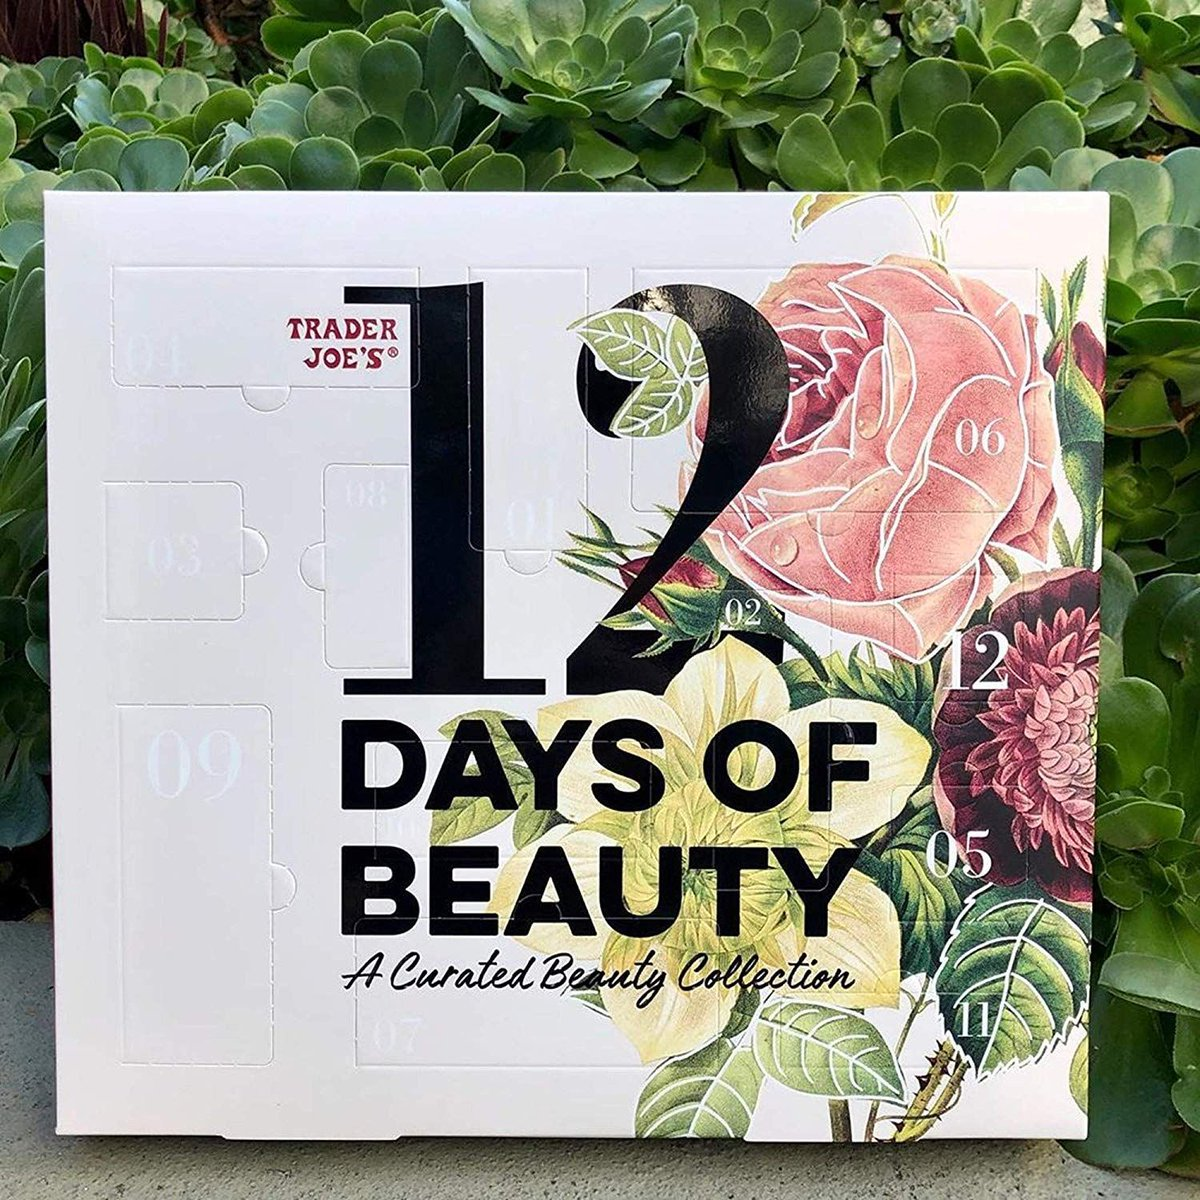 Get your #TraderJoes 12 Days of Beauty for #Christmas!   #beauty #skincare #greenbeauty #holidaybeauty #Christmasbeauty #naturalskincare